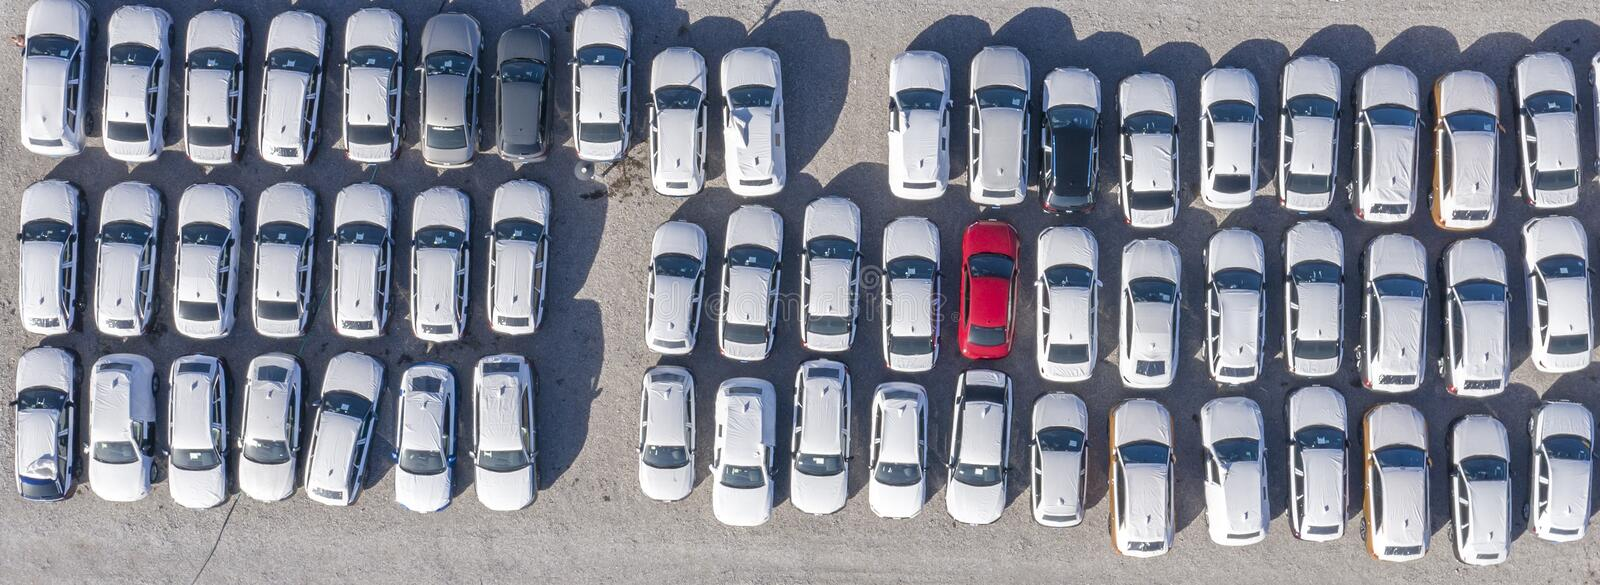 Aerial view cars for sale stock lot row, Car Dealer Inventory, parking lot. One red and all white stock images